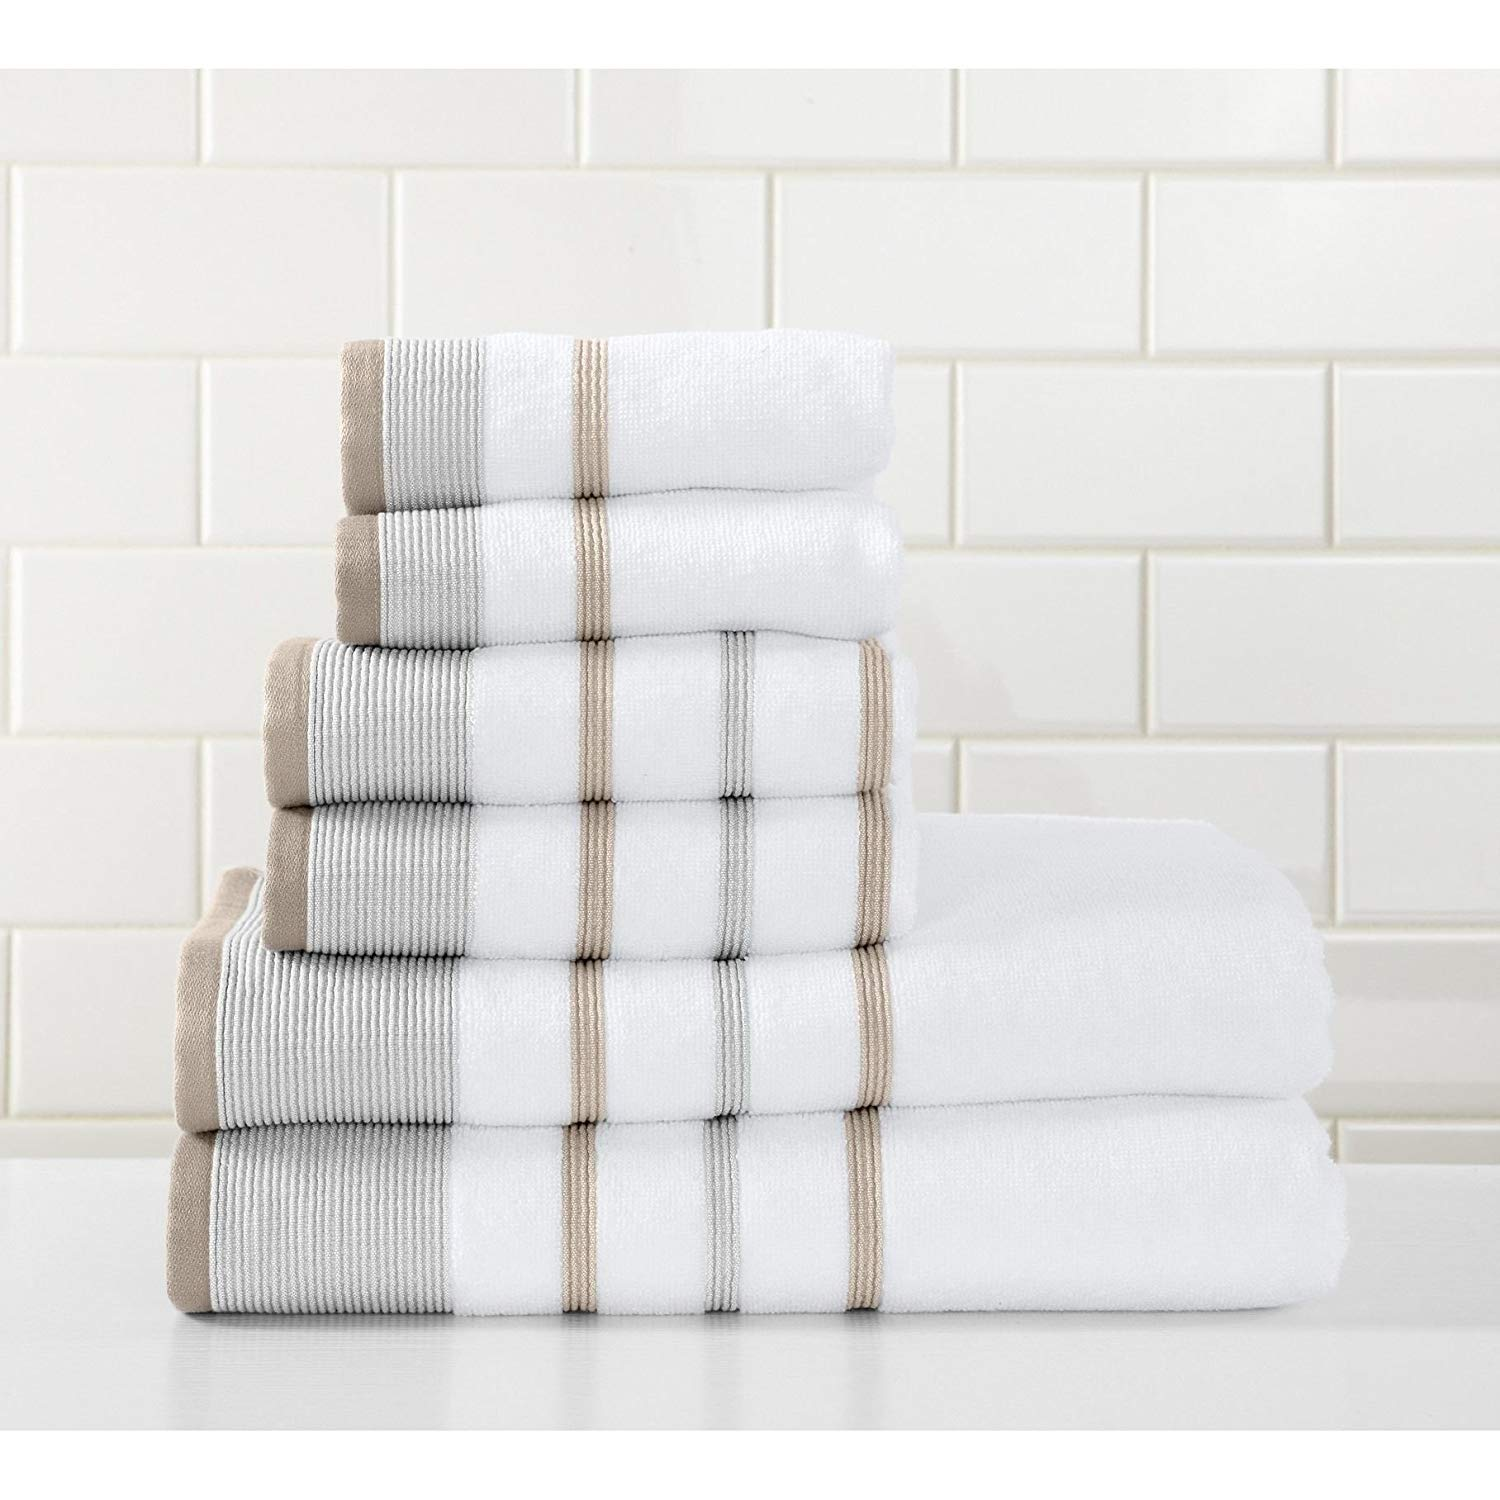 6 Piece Glacier Grey Stripe Towel Set With 30 X 54 Inches Bath Towels, Cappuccino Beige White Striped Solid Color Ultra Plush Elegant Sophisticated Fade Resistant Trendy Long Lasting, Turkish Cotton